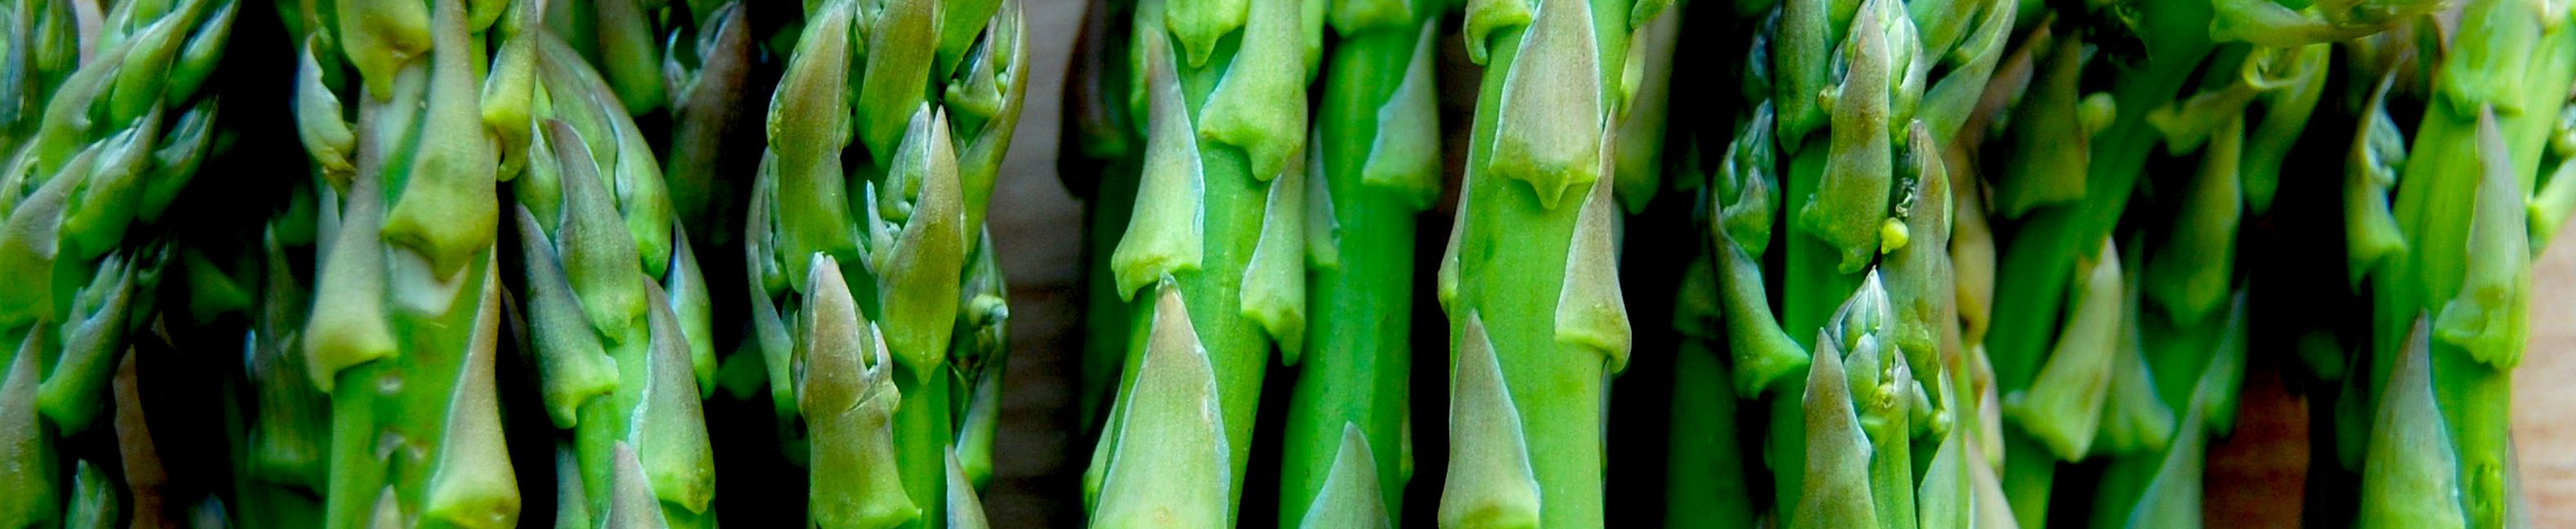 328-1_0002_Health-Benefits-Of-Asparagus